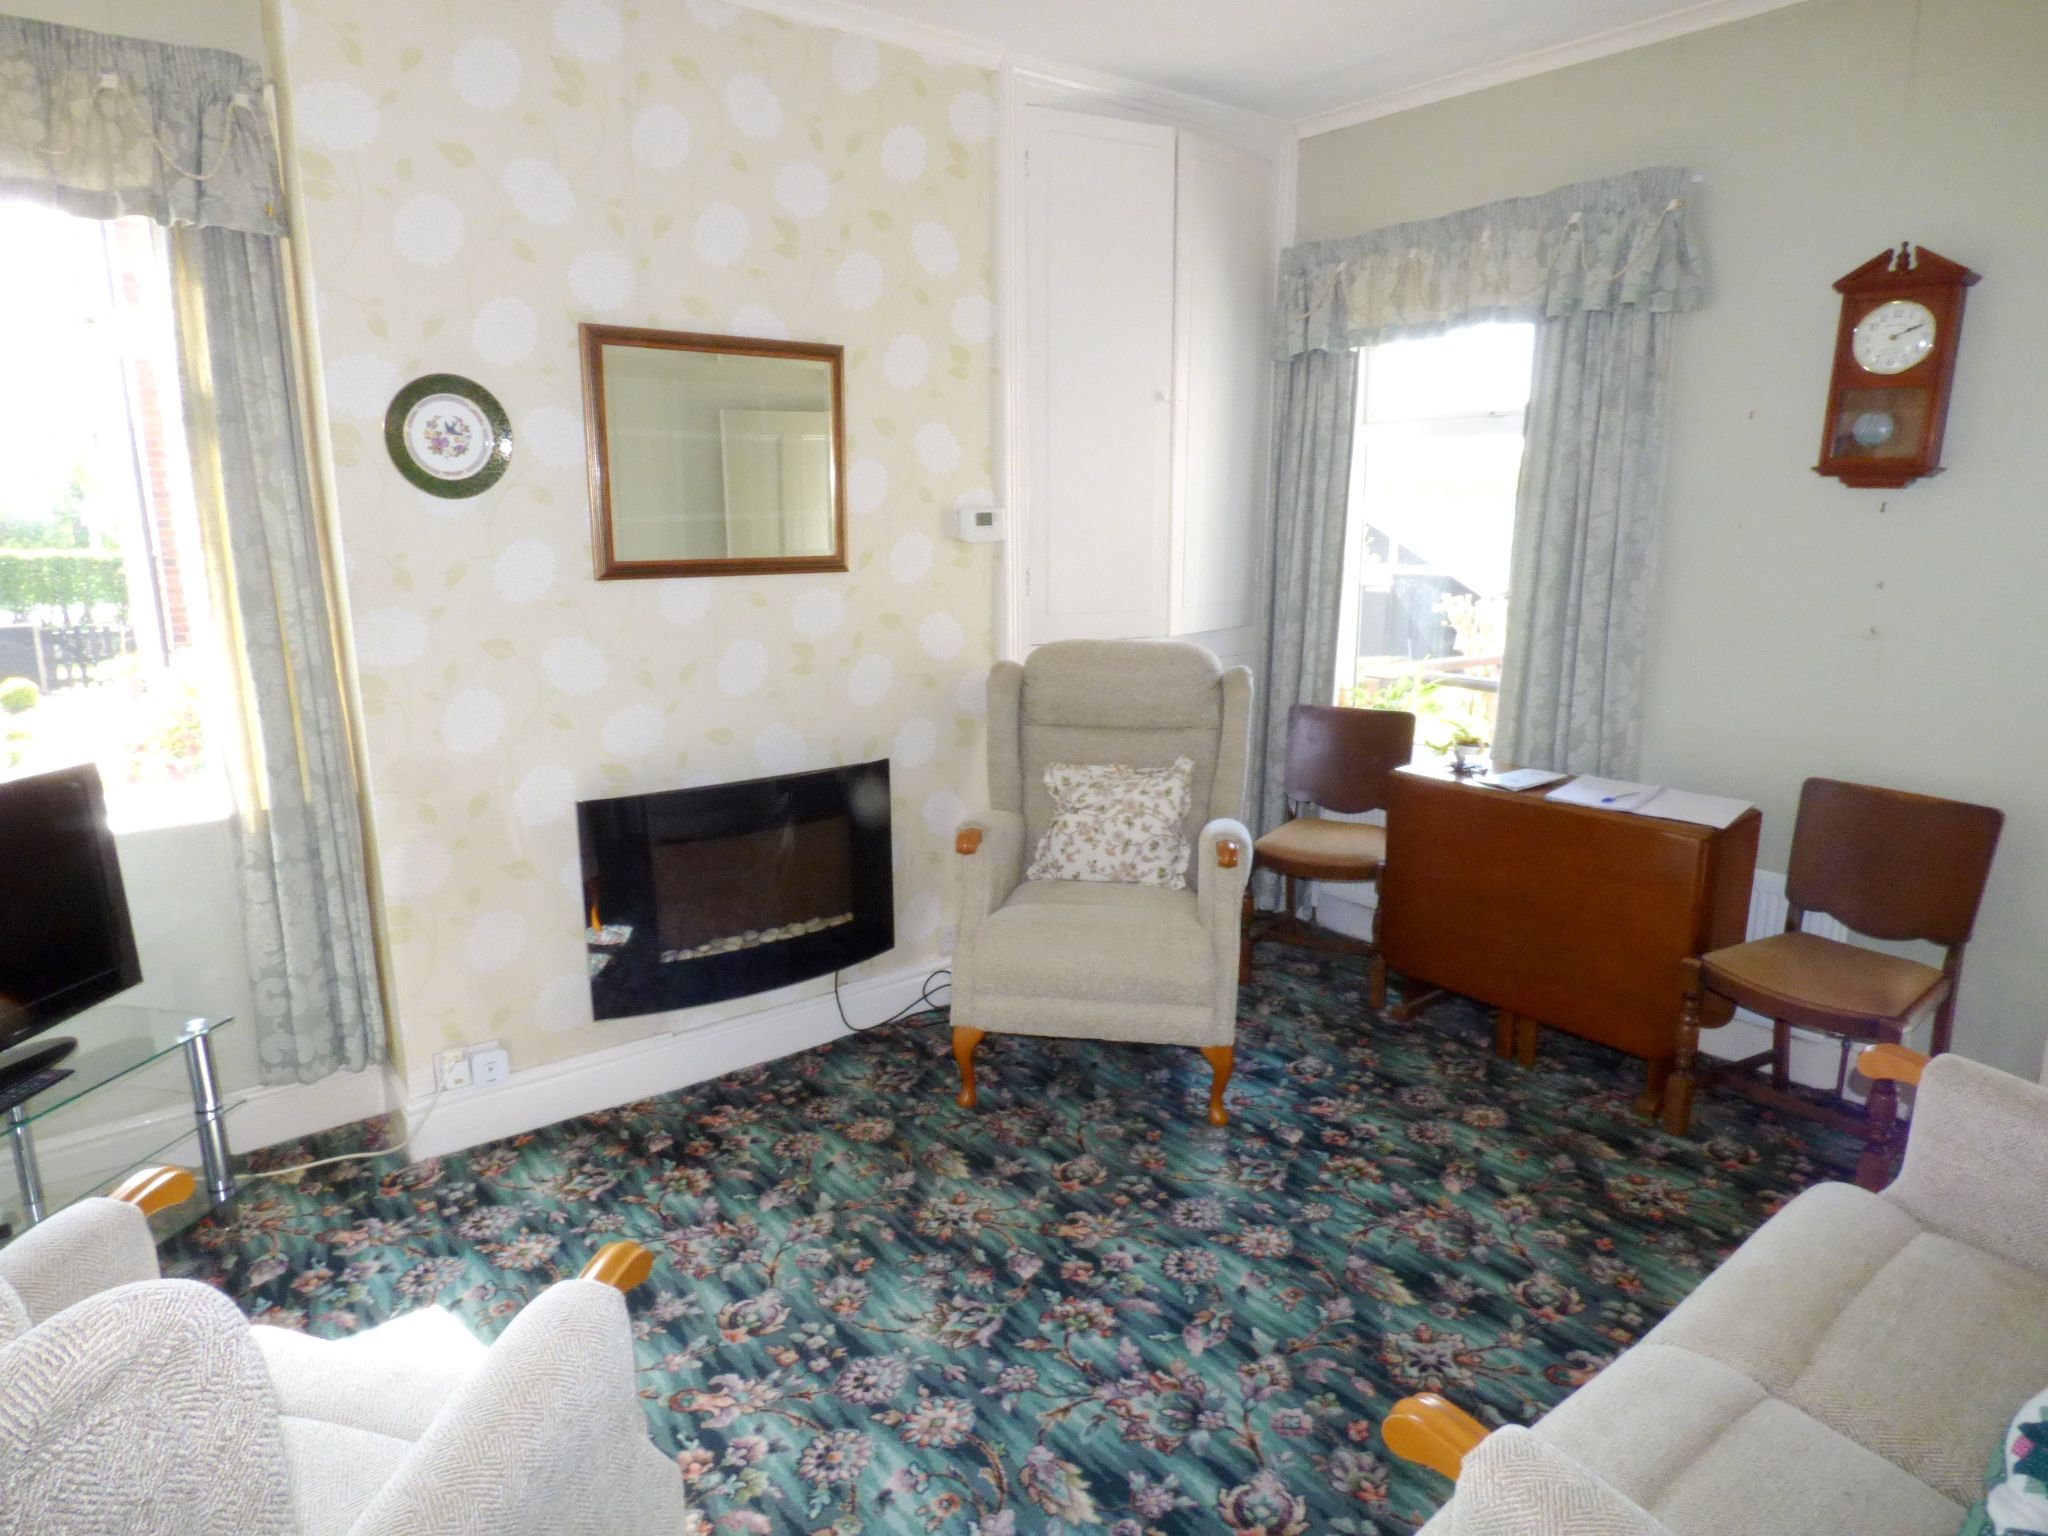 2 Bedroom Semi-detached House For Sale - Lounge